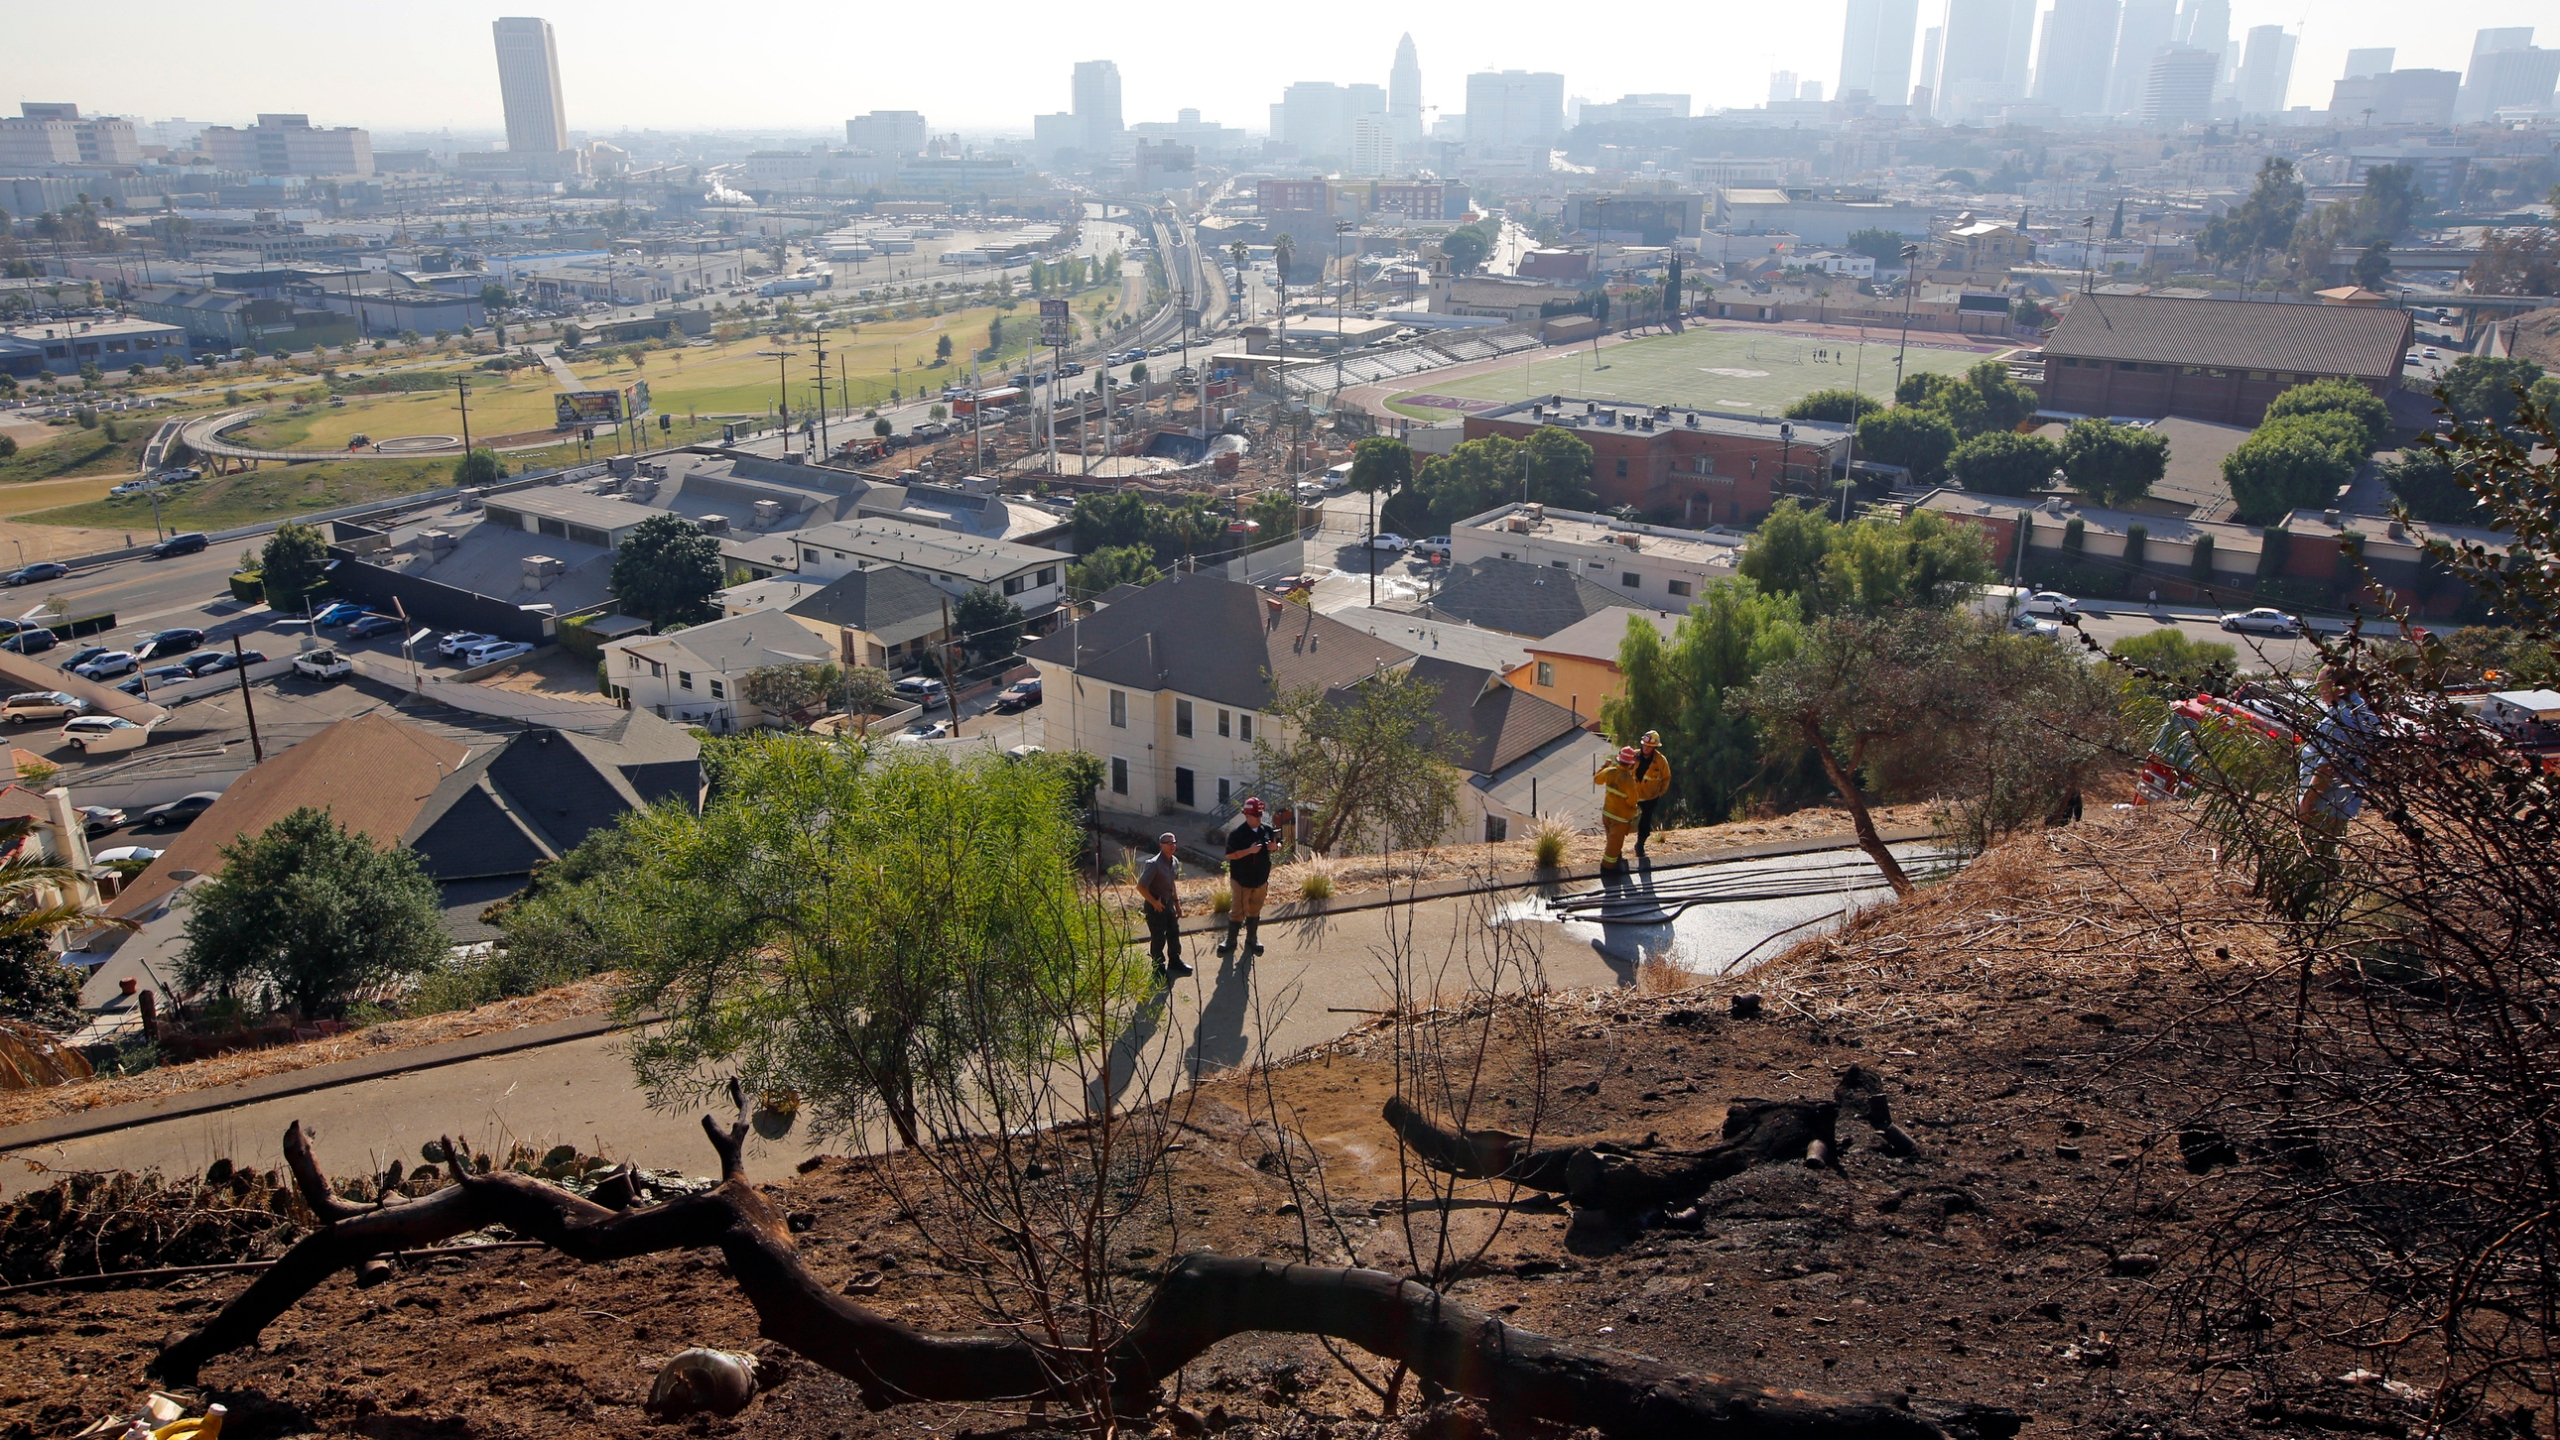 In this Dec. 14, 2017, file photo, Los Angeles Fire Department Arson Counter-Terrorism investigators check a burned-out homeless camp after a brush fire erupted in the hills in Elysian Park near downtown Los Angeles. Authorities say fires linked to homeless tents and camps are raising concern in Los Angeles, where they have claimed seven lives and caused tens of millions of dollars in damage to nearby businesses. The Los Angeles Times says the Fire Department handled 24 such fires a day in the first quarter of this year. (AP Photo/Damian Dovarganes, File)